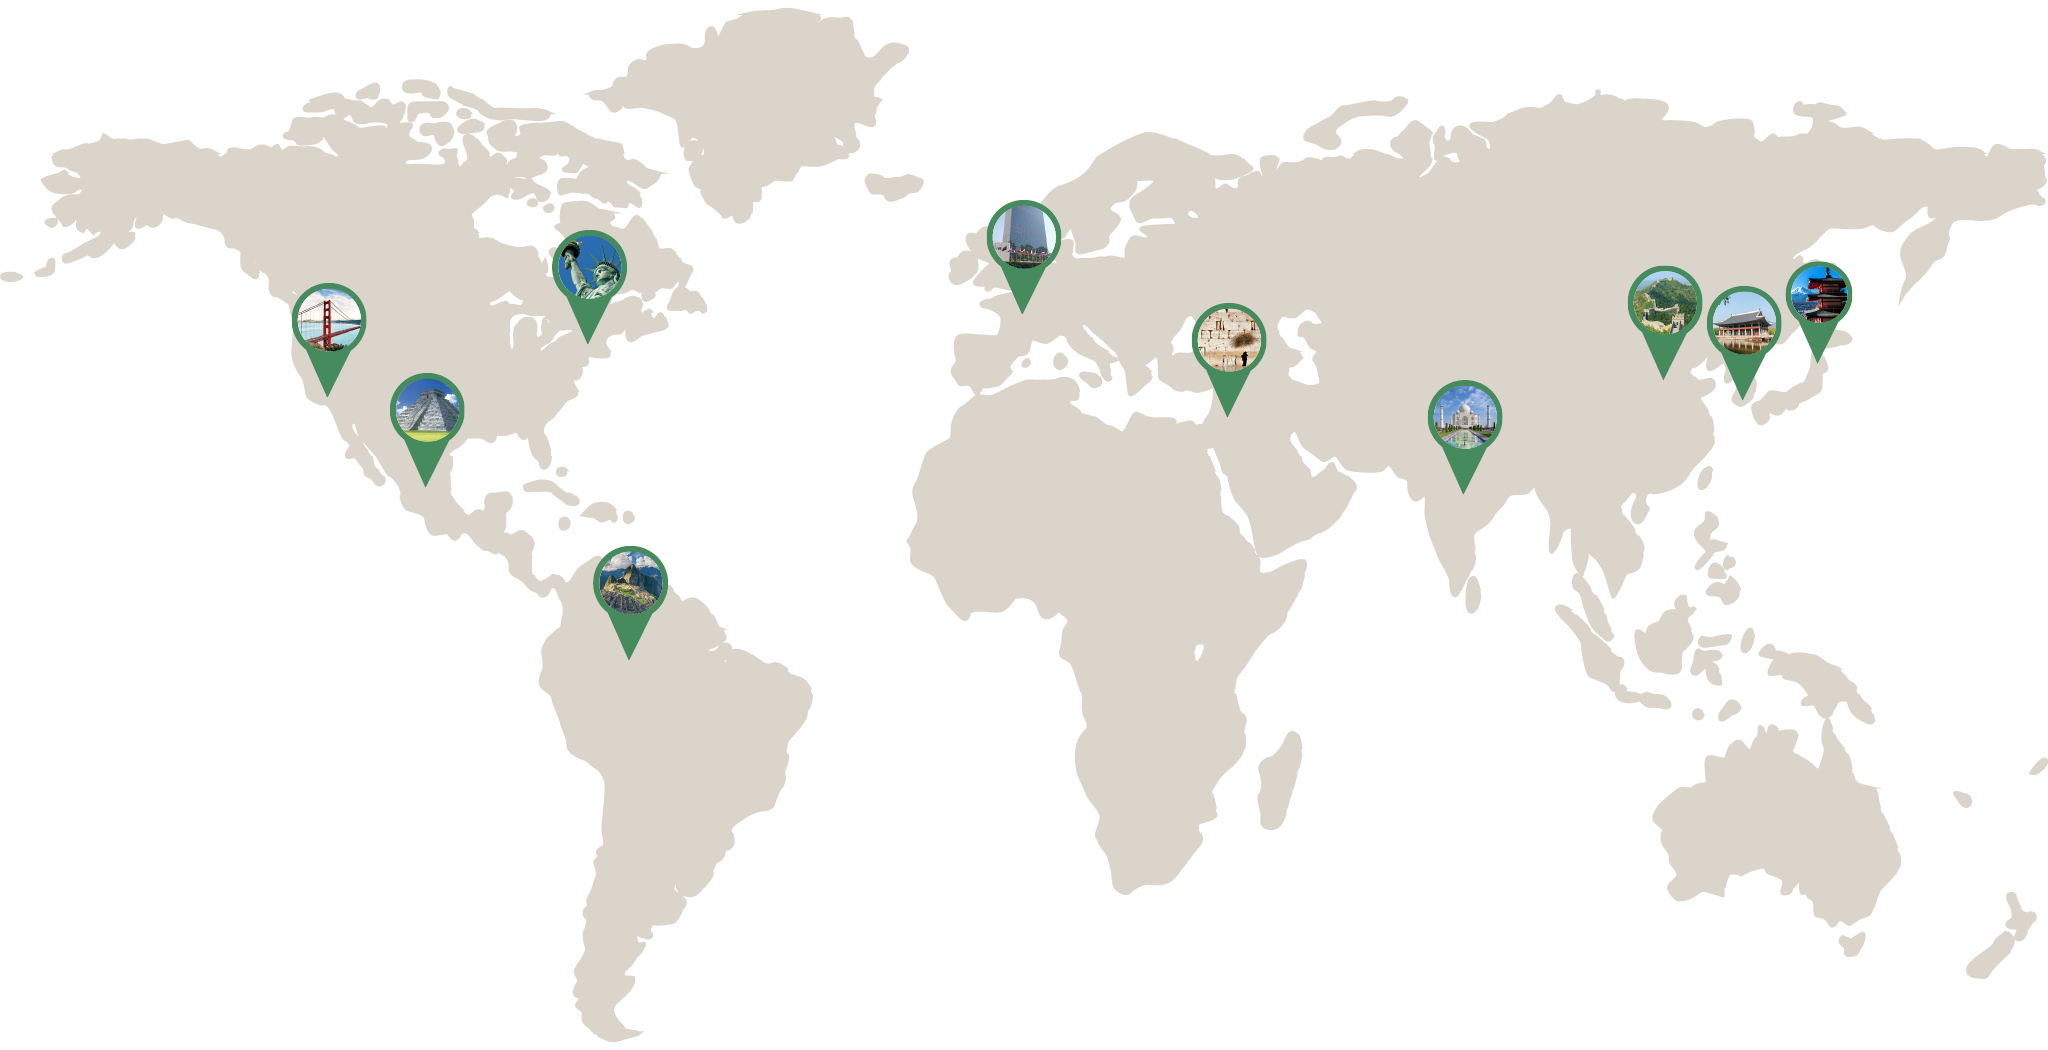 Map Of The World With Green Pins on Major Landmarks Across the Globe